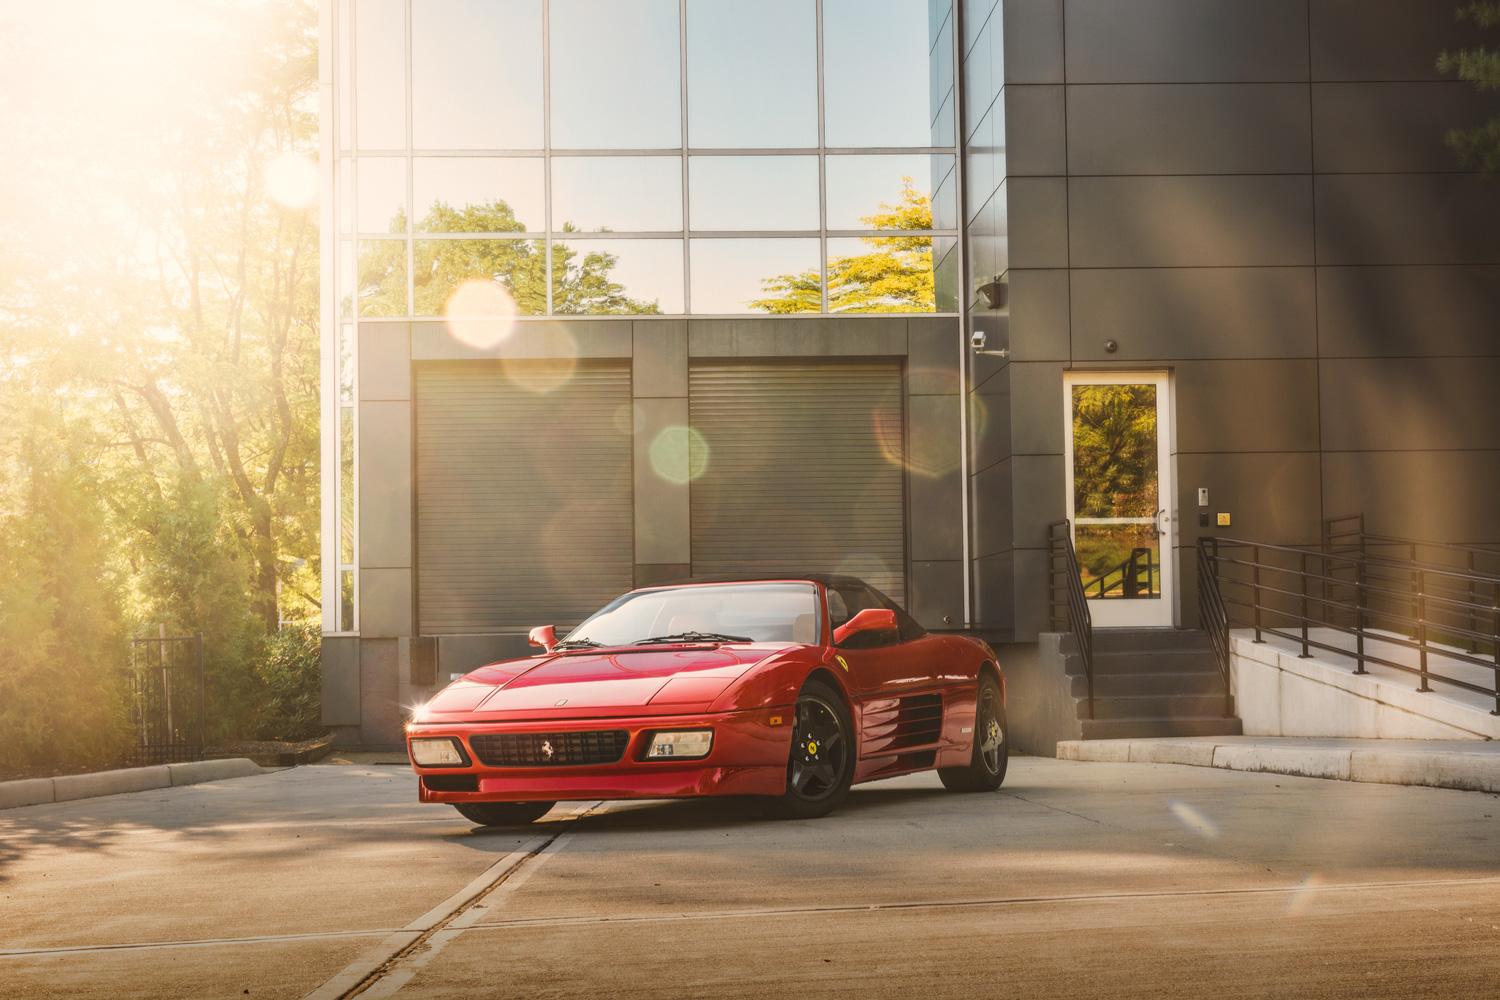 Ferrari 348 sunset